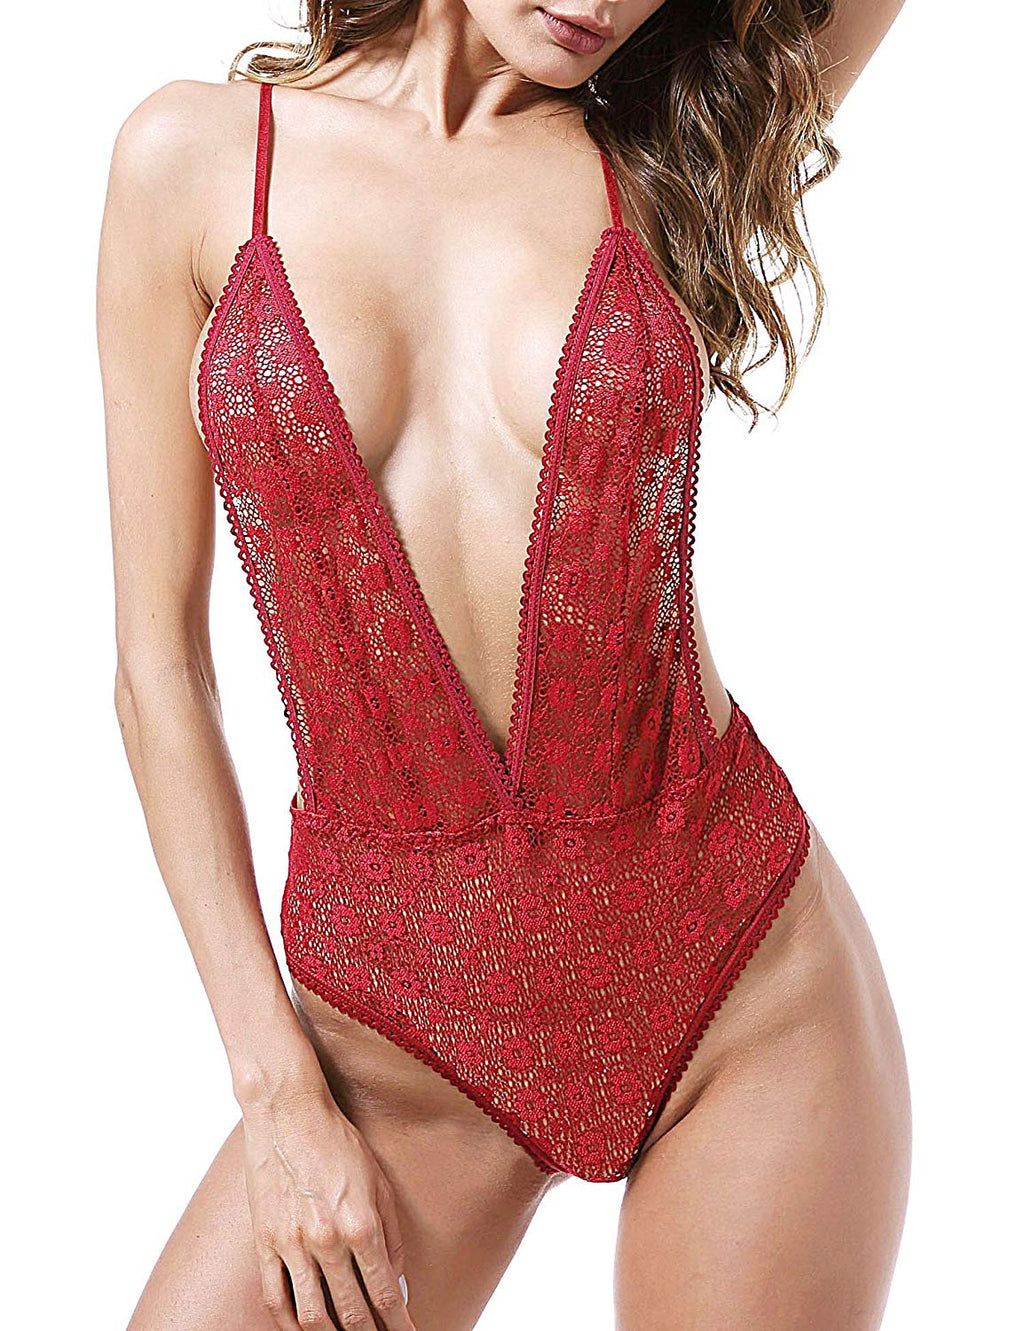 Lingerie for Women Sexy Teddy Lingerie Lace V Neck Bodysuit